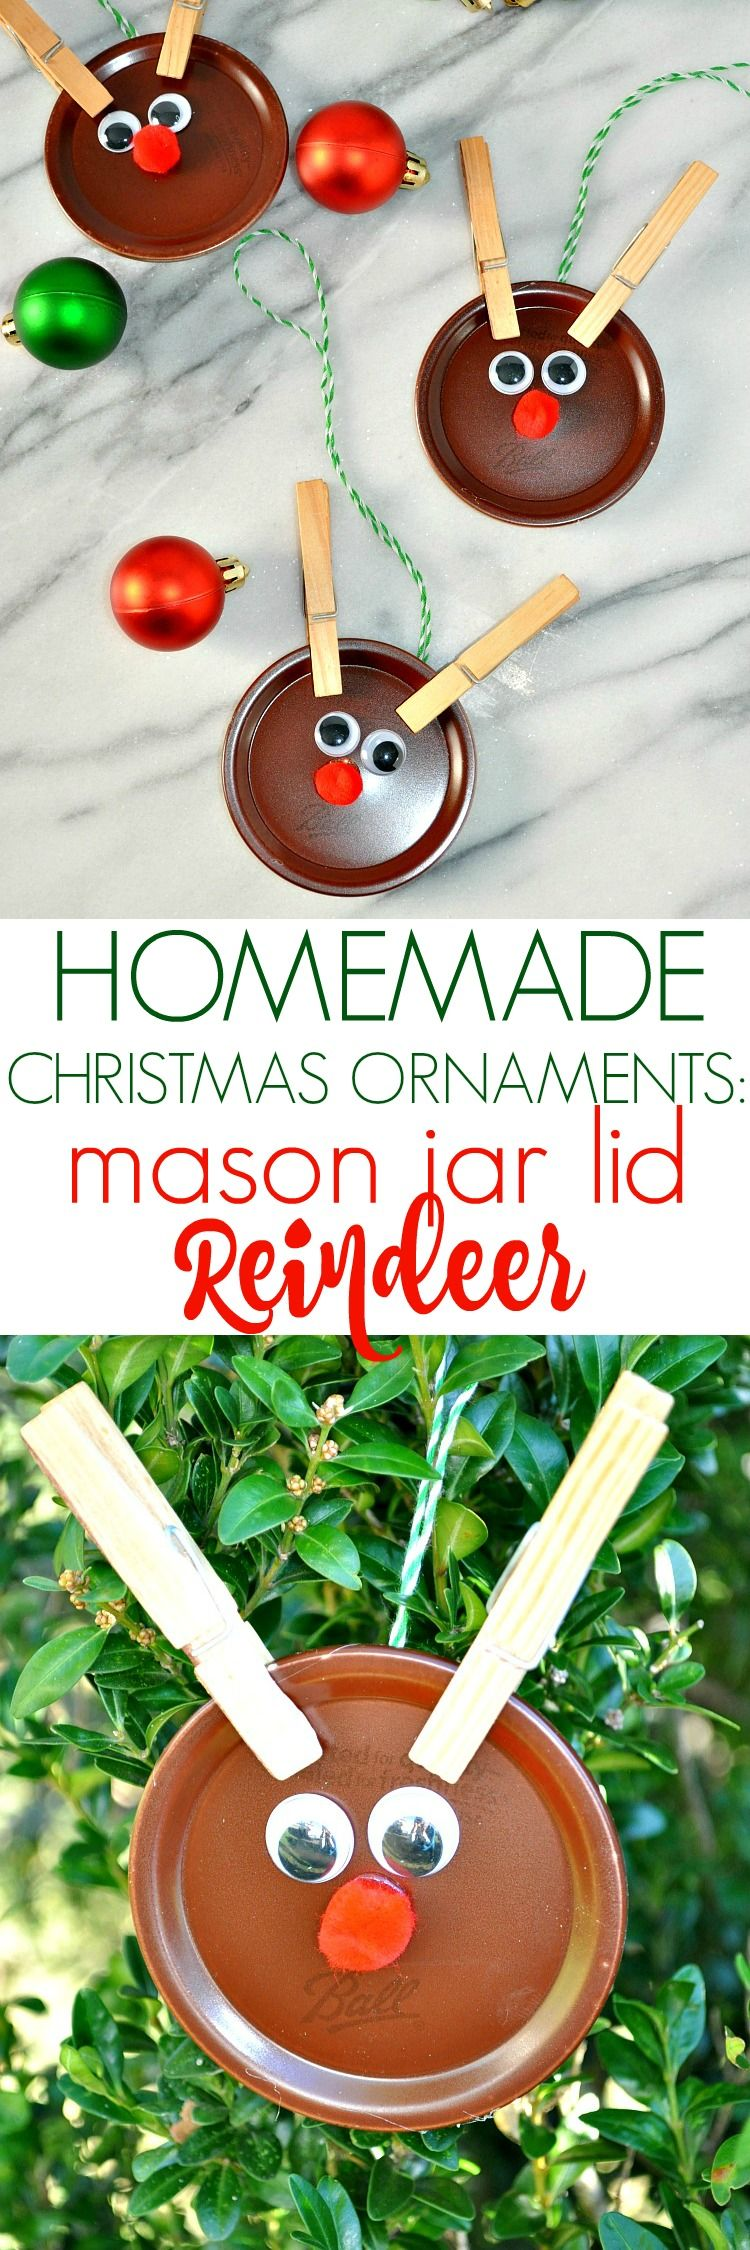 Easy christmas ornaments for kids to make - These Homemade Christmas Ornament Reindeer Are An Easy Christmas Craft For Kids And They Re